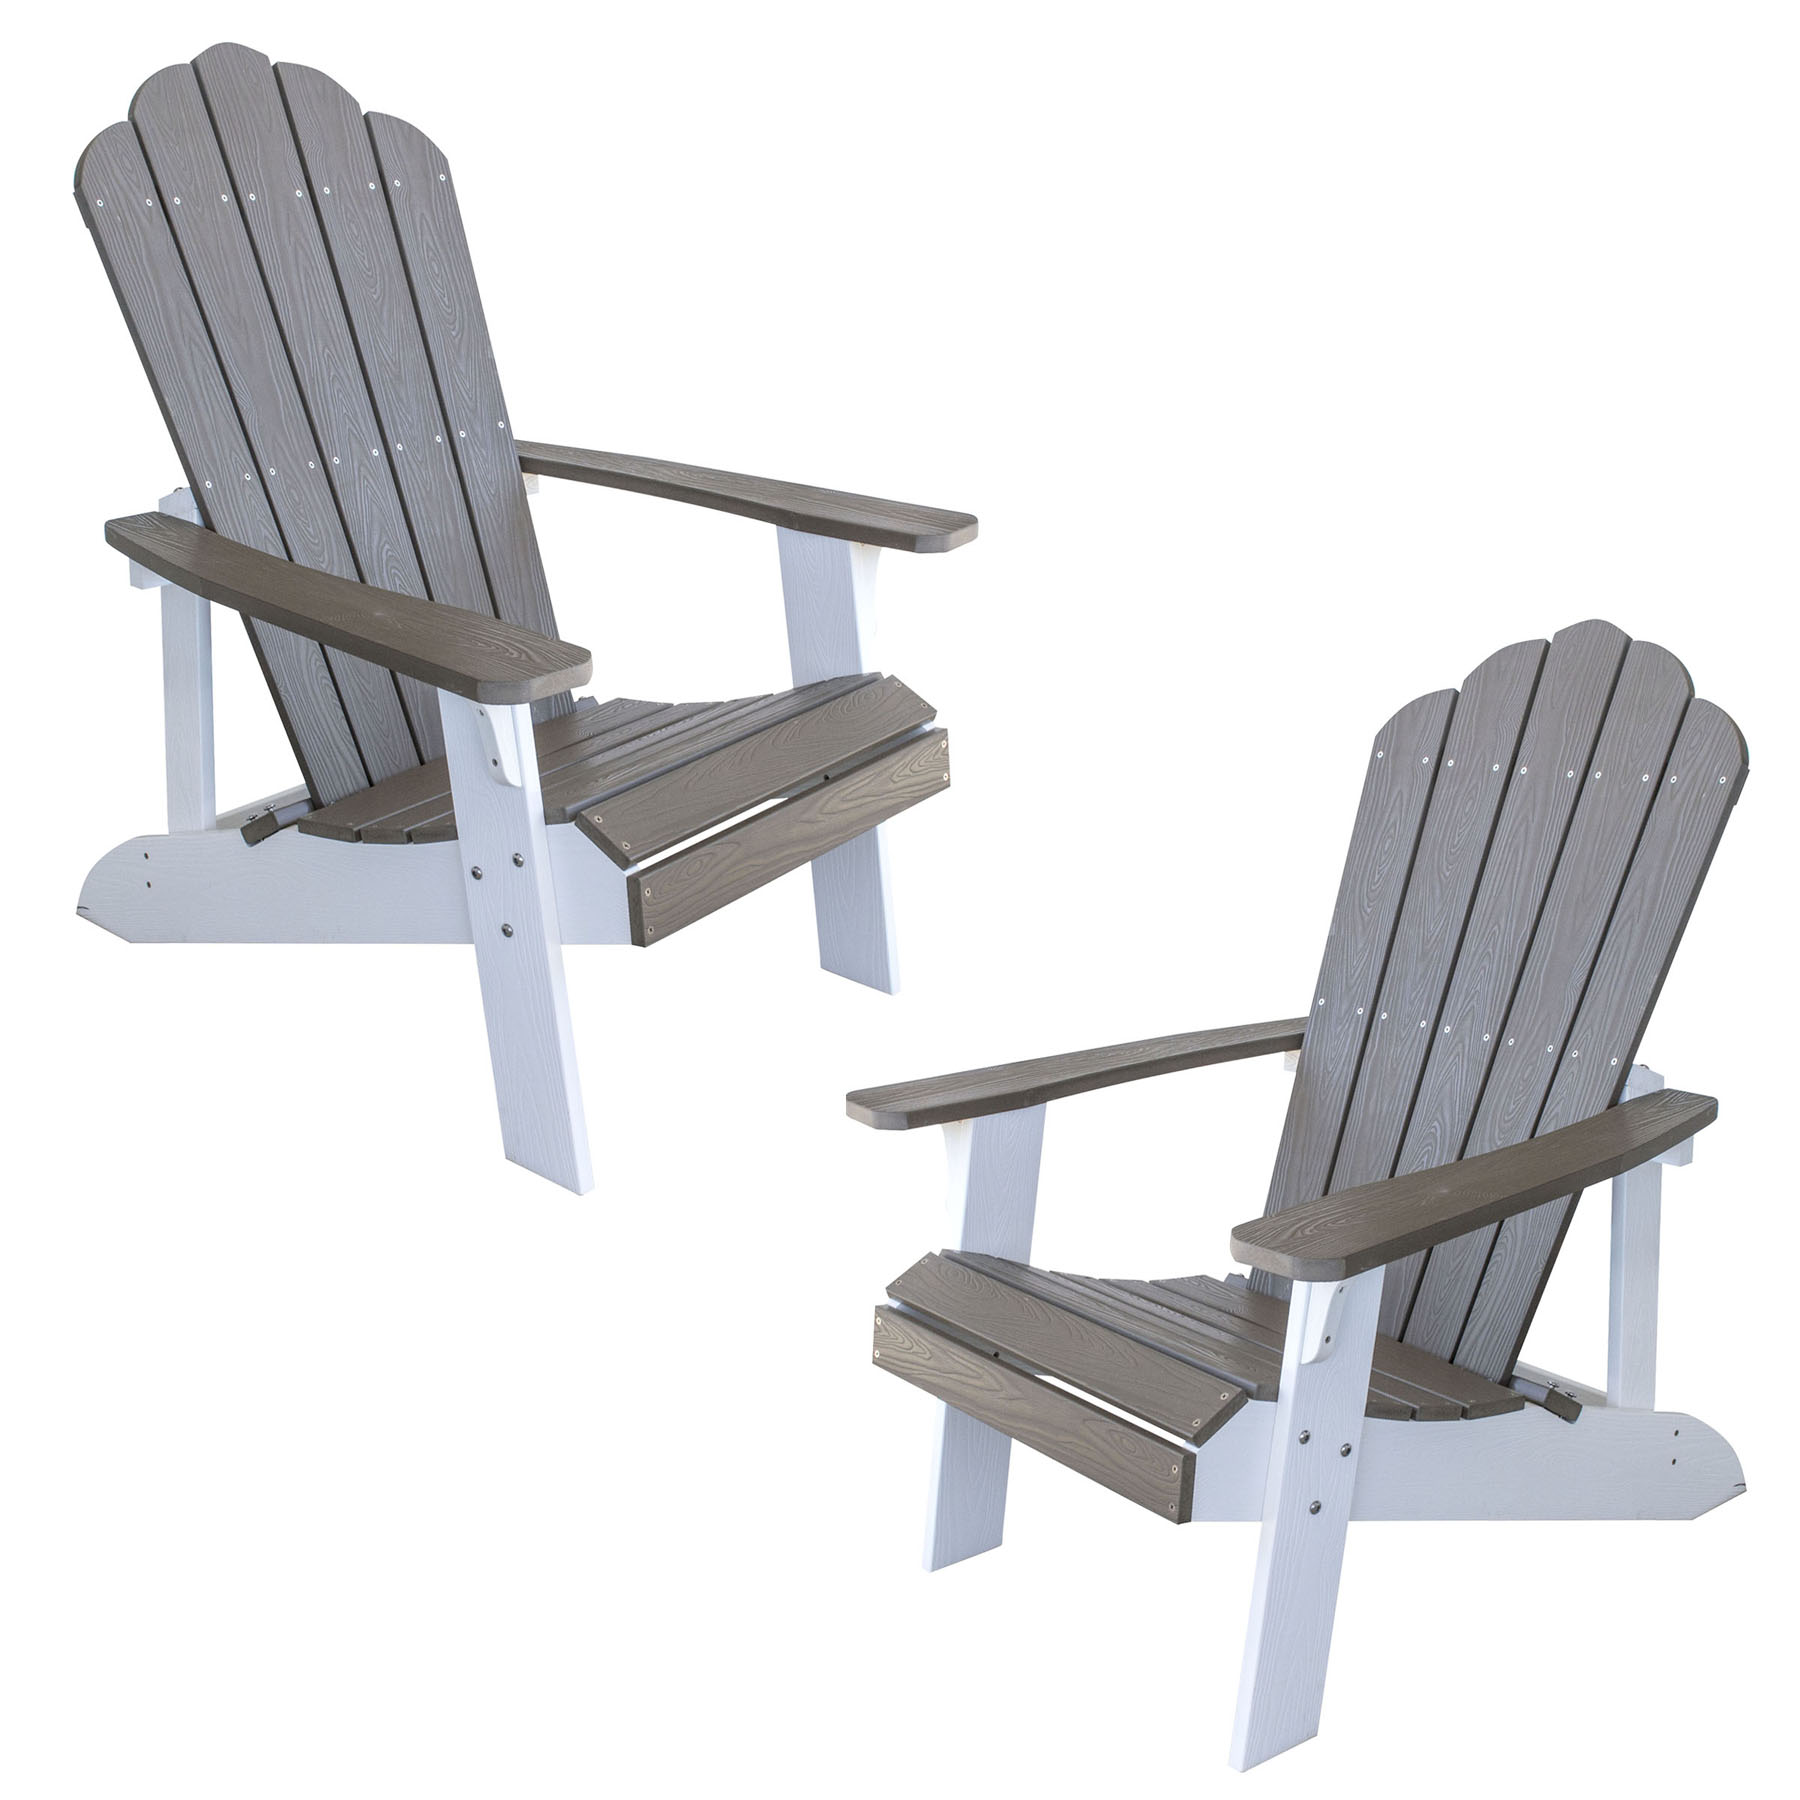 Simulated Wood Outdoor Two Tone Adirondack Chair, Driftwood with White Accents, 2 Piece Set